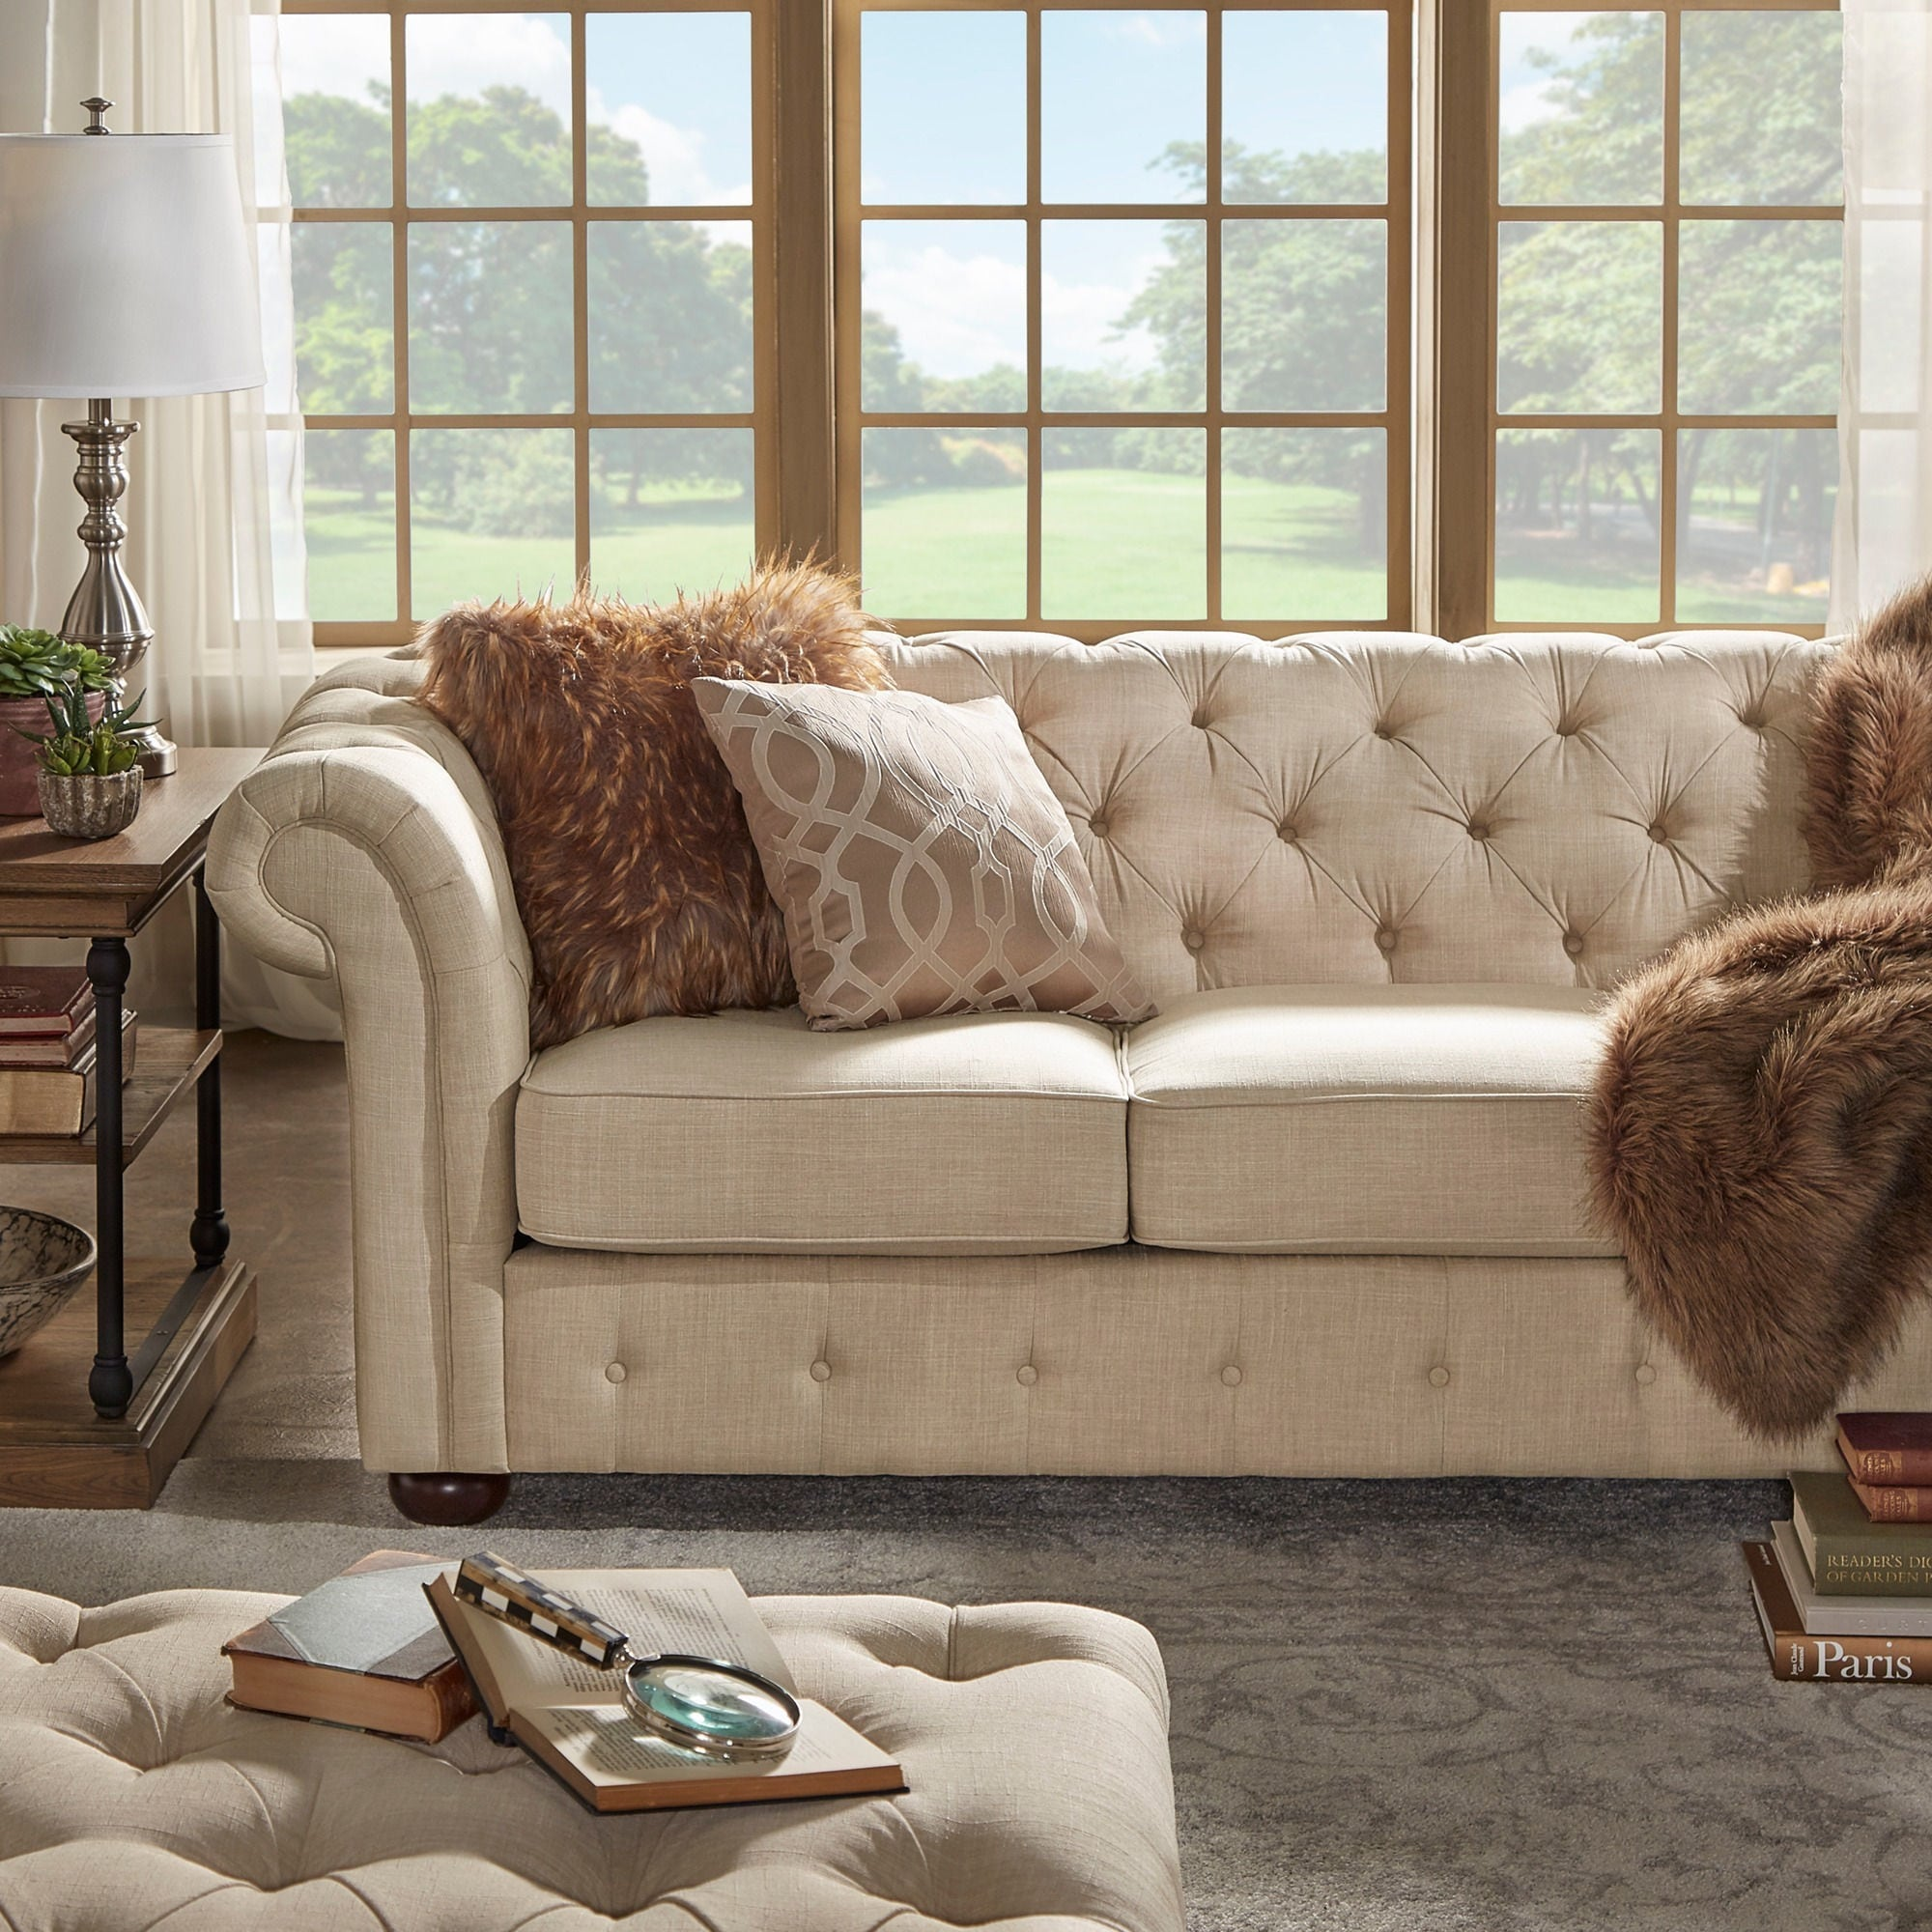 Knightsbridge Beige Fabric On Tufted Chesterfield Sofa And Seating By Inspire Q Free Shipping Today 8763005